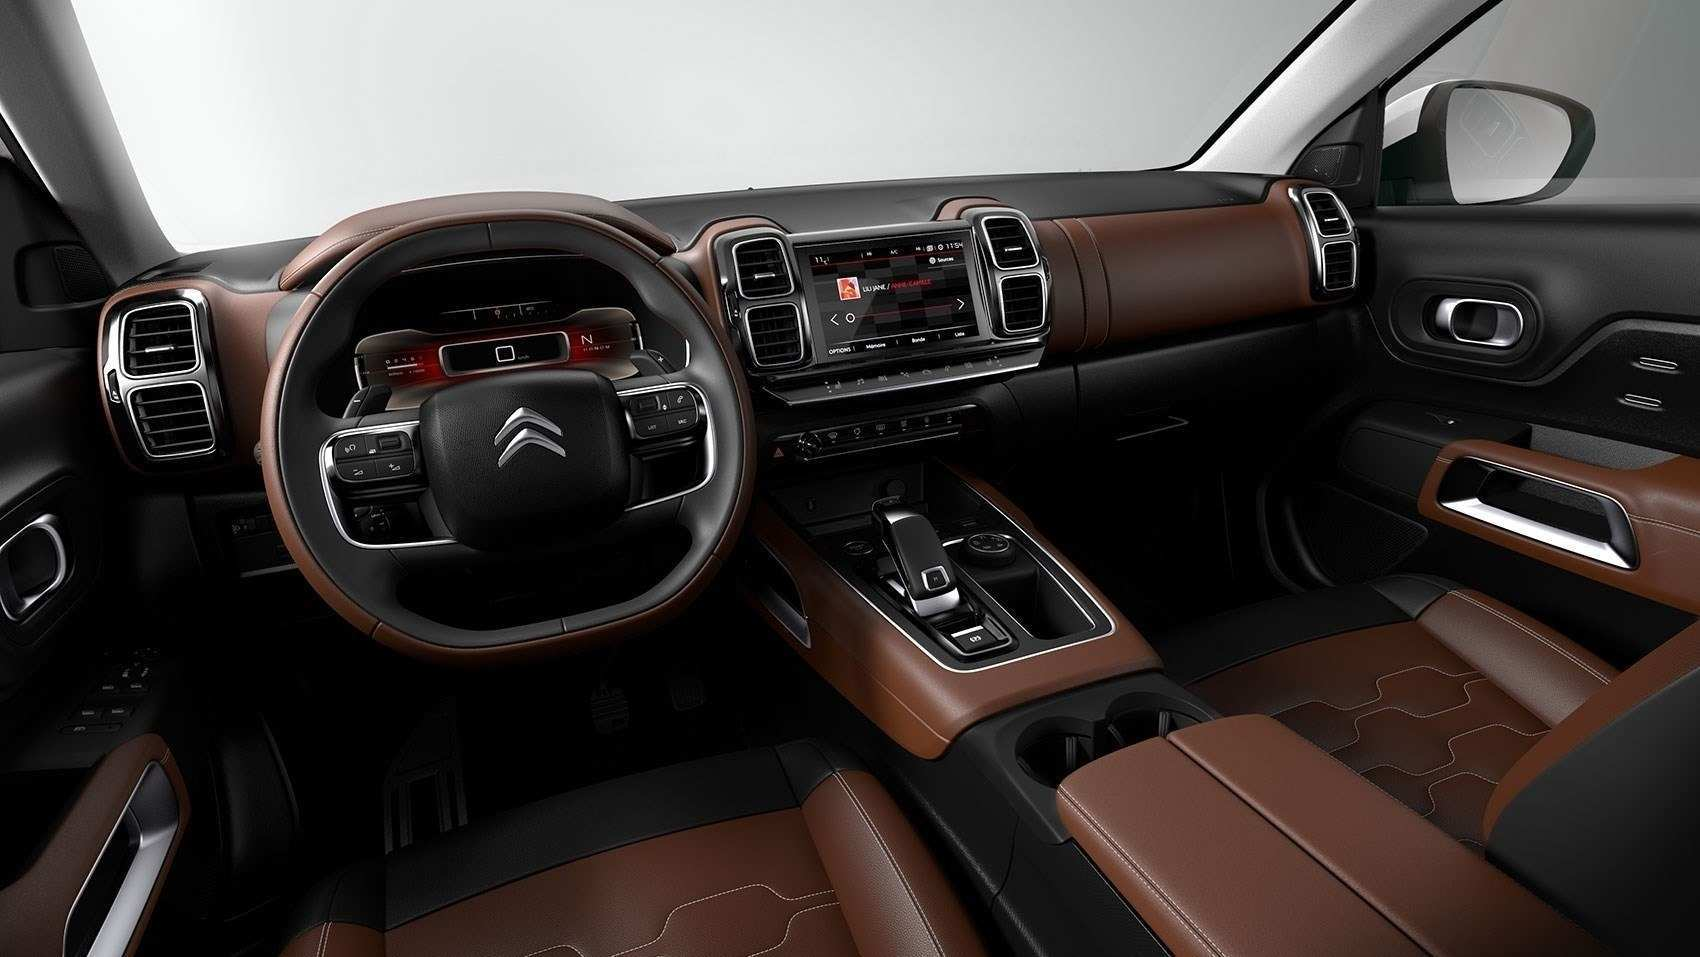 83 All New Citroen Ds5 2019 Performance with Citroen Ds5 2019